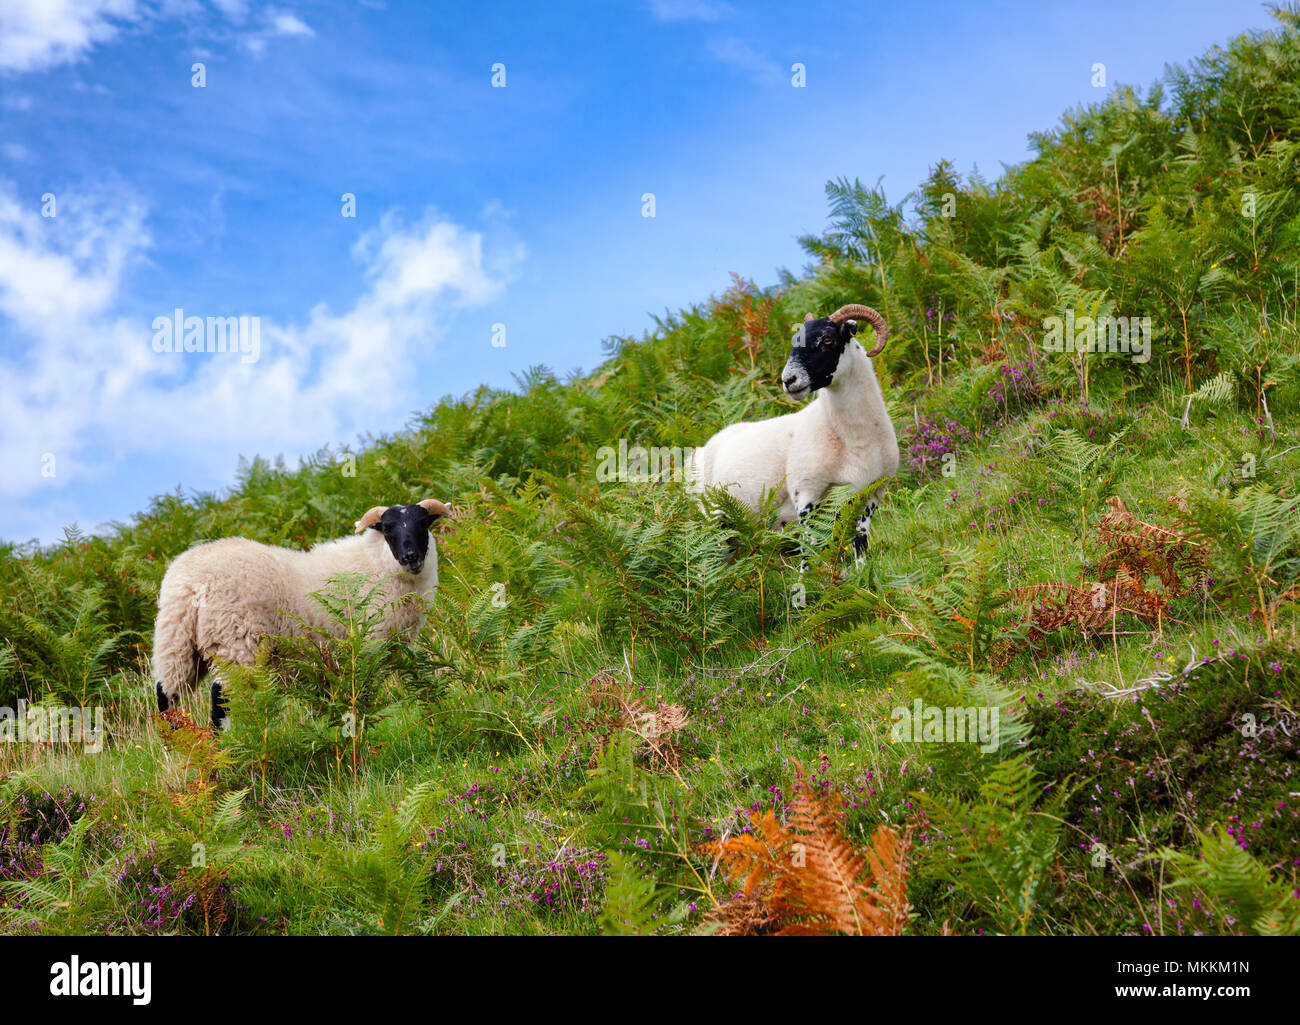 Goats grazing on a hill at Scottish Highlands - Stock Image